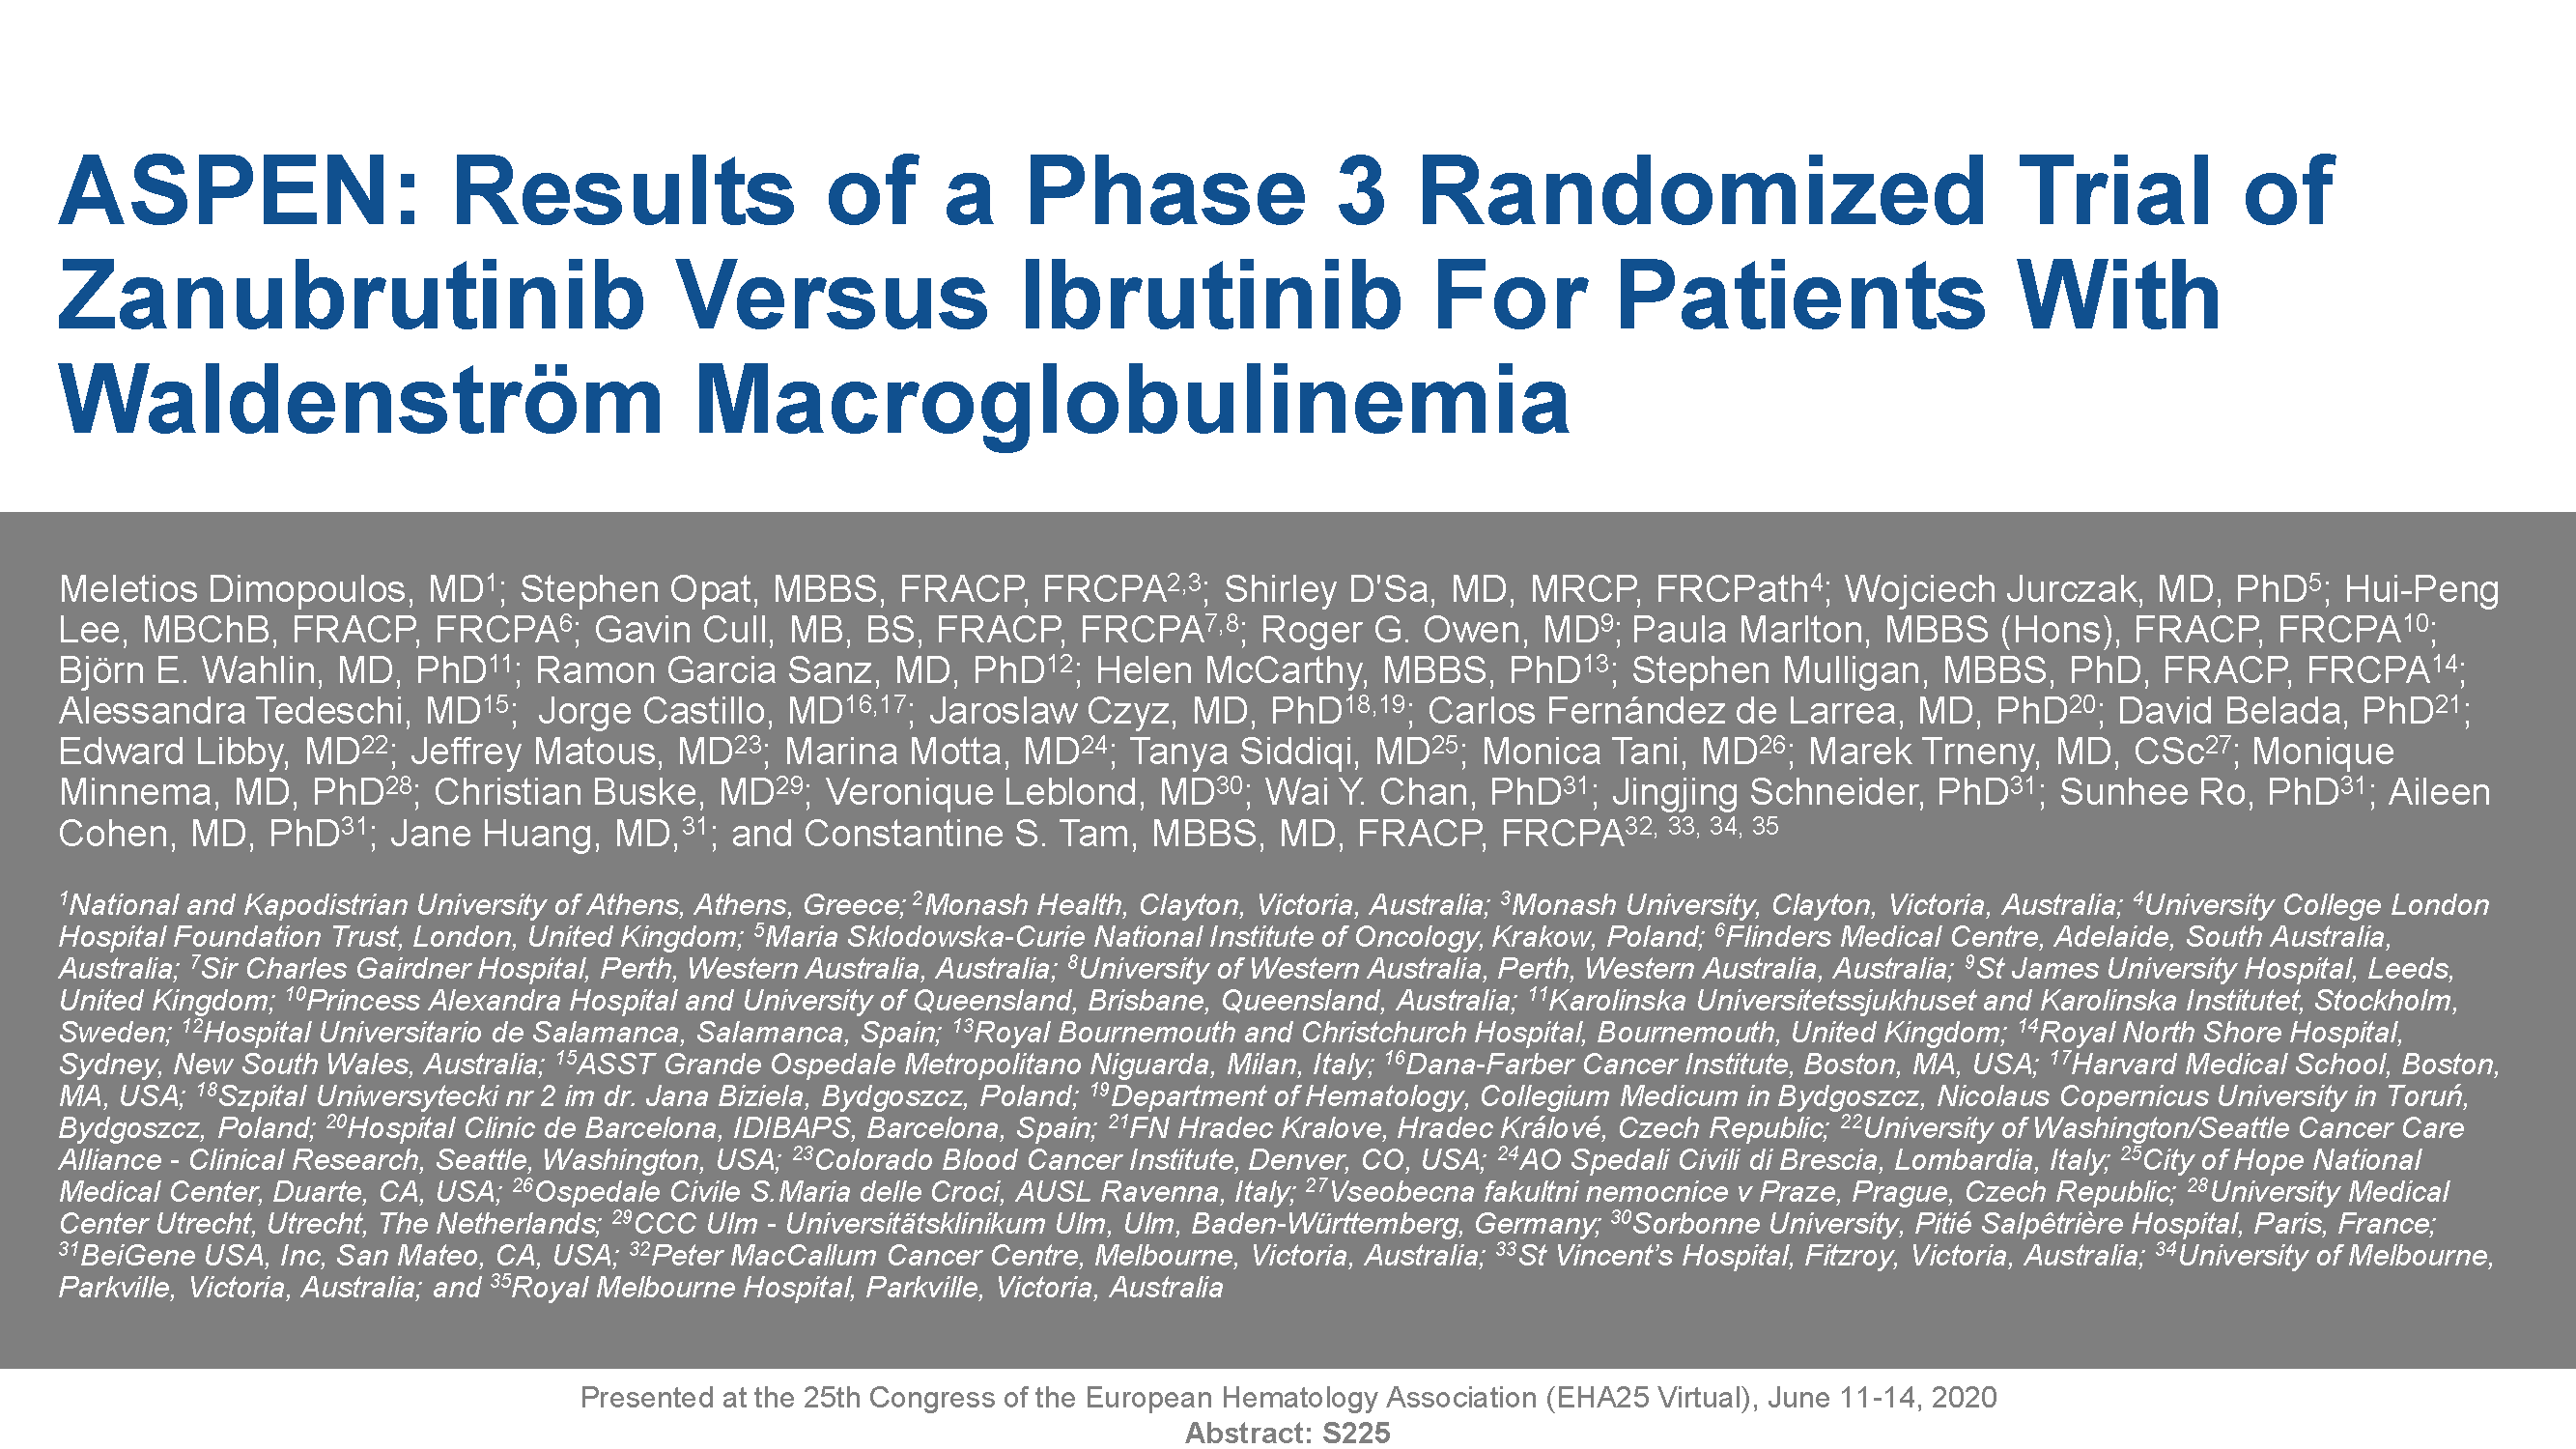 ASPEN: Results of a Phase 3 Randomized Trial of Zanubrutinib versus Ibrutinib for Patients with Waldenström Macroglobulinemia (EHA)